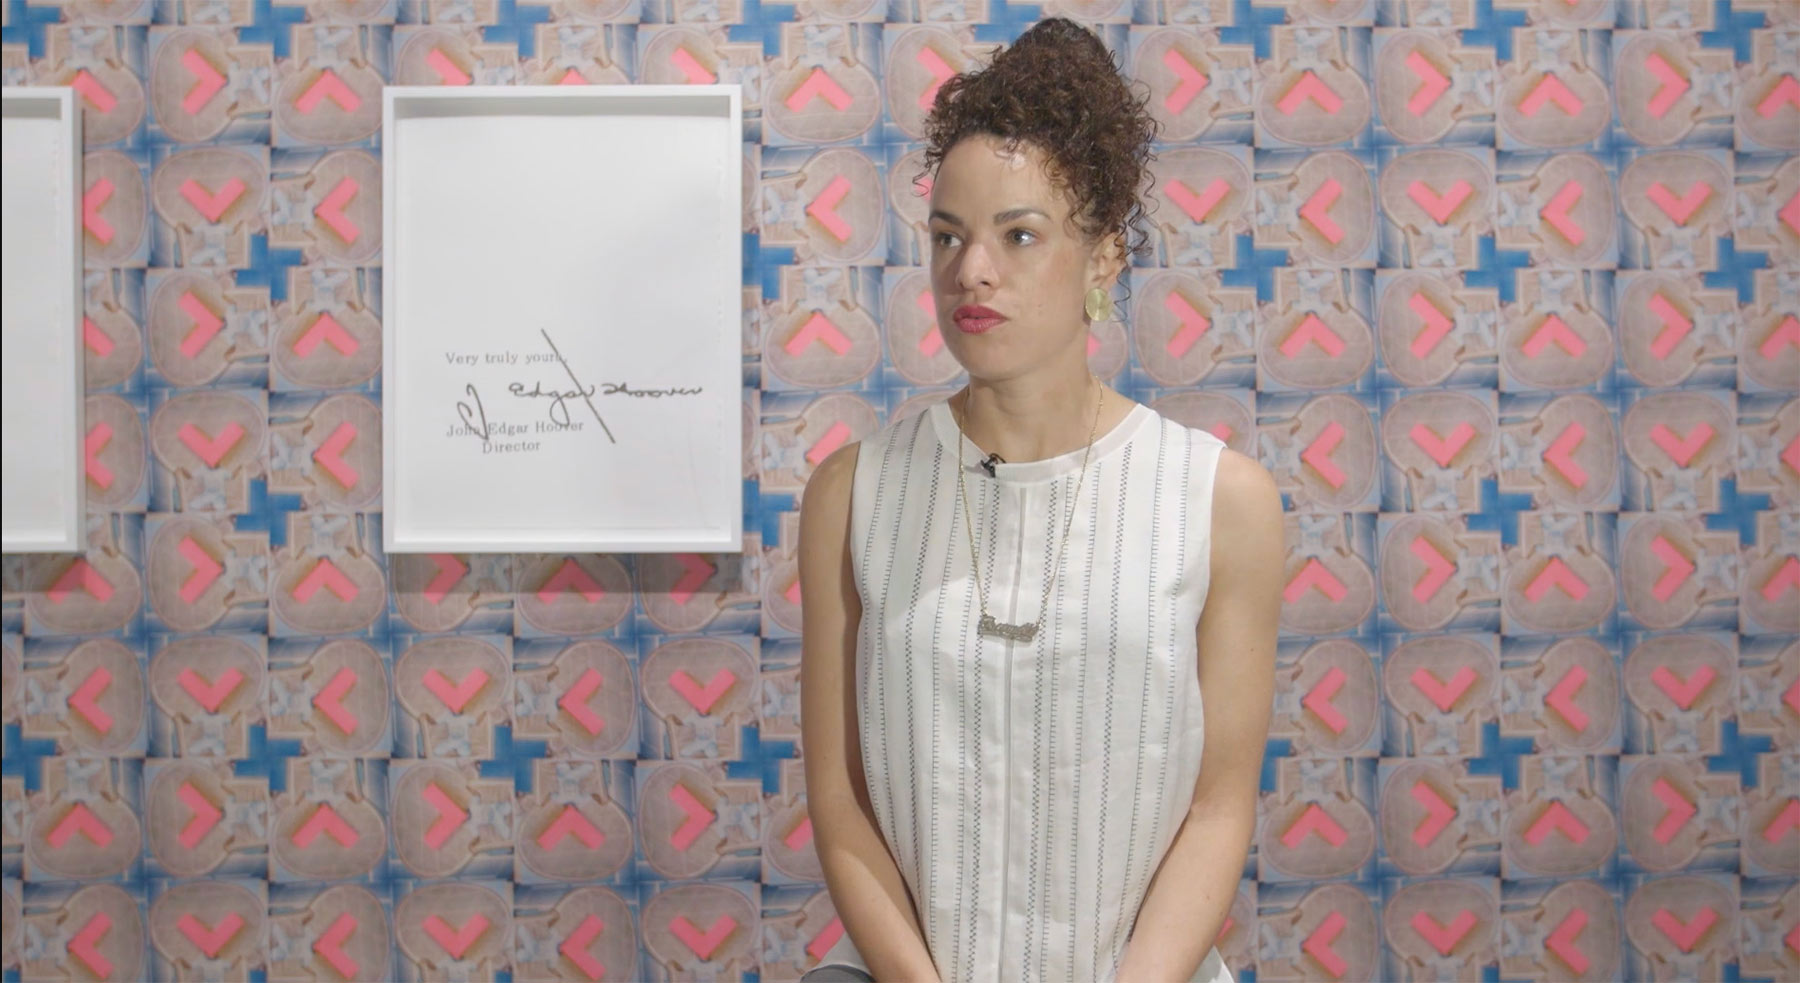 Sadie Barnette standing in the Cantor Fitzgerald Gallery with her artwork in the background